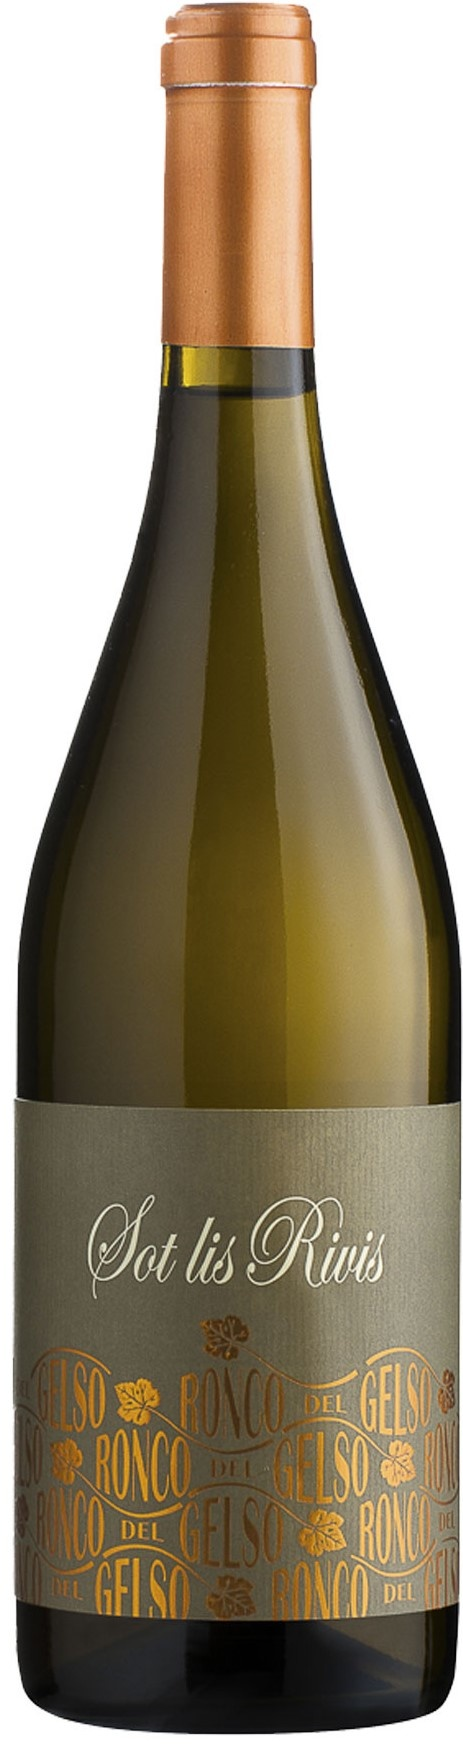 Ronco del Gelso Pinot Grigio, Sot Lis Rivis 2018-1